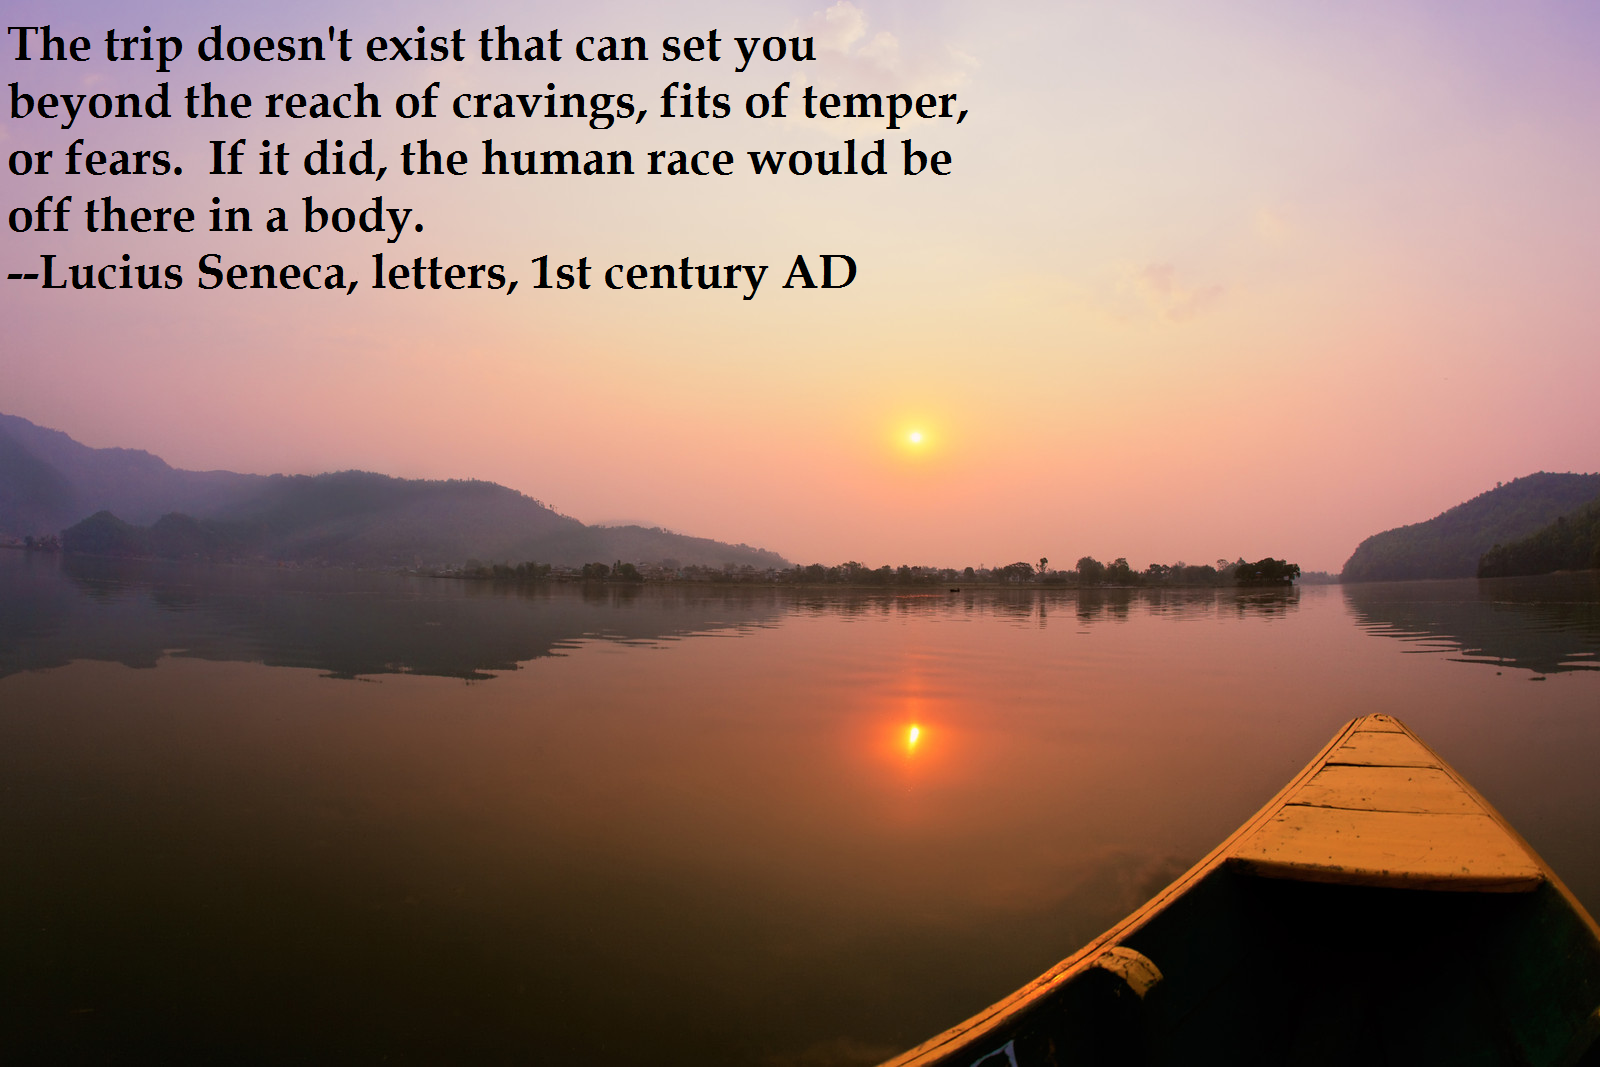 The Trip Doesn't Exist That Can Set You Beyond The Reach Of Cravings, Fits Of Temper, Or Fears. If It Did, The Human Race Would Be Off There In A Body. --Lucius Seneca, Letters, 1st https://inspirational.ly